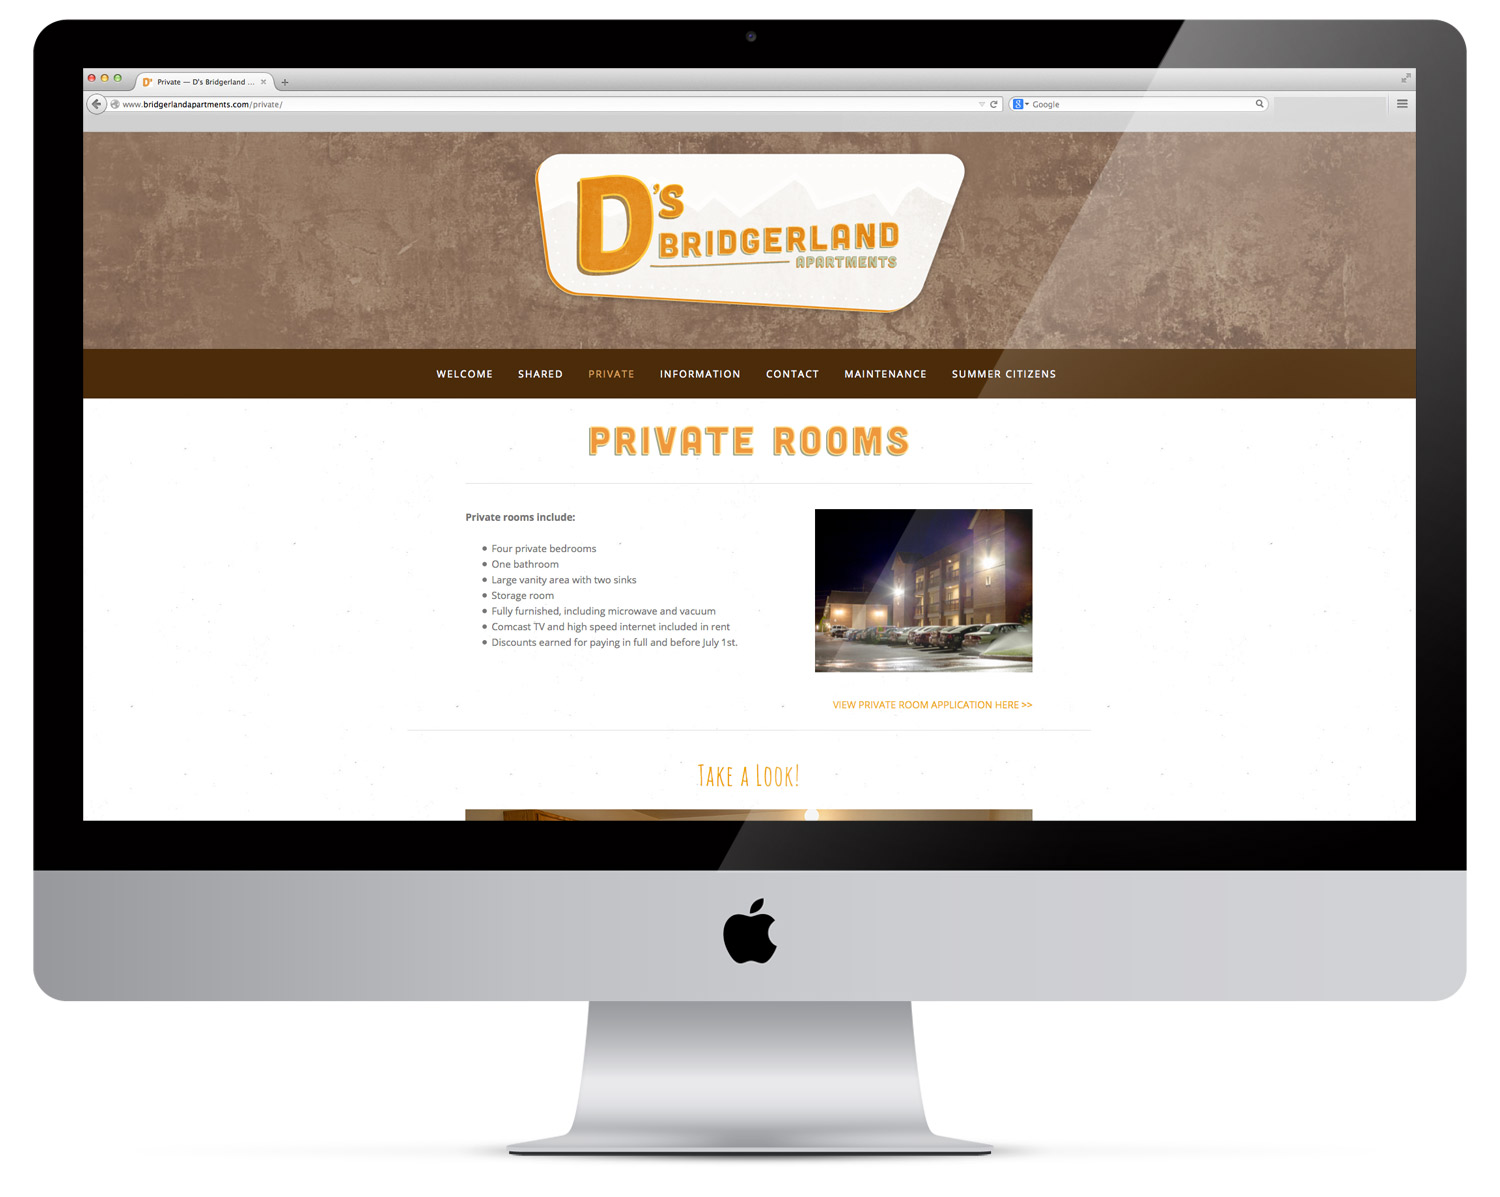 DsBridgerlandApartmetns-MockUp2-web.jpg